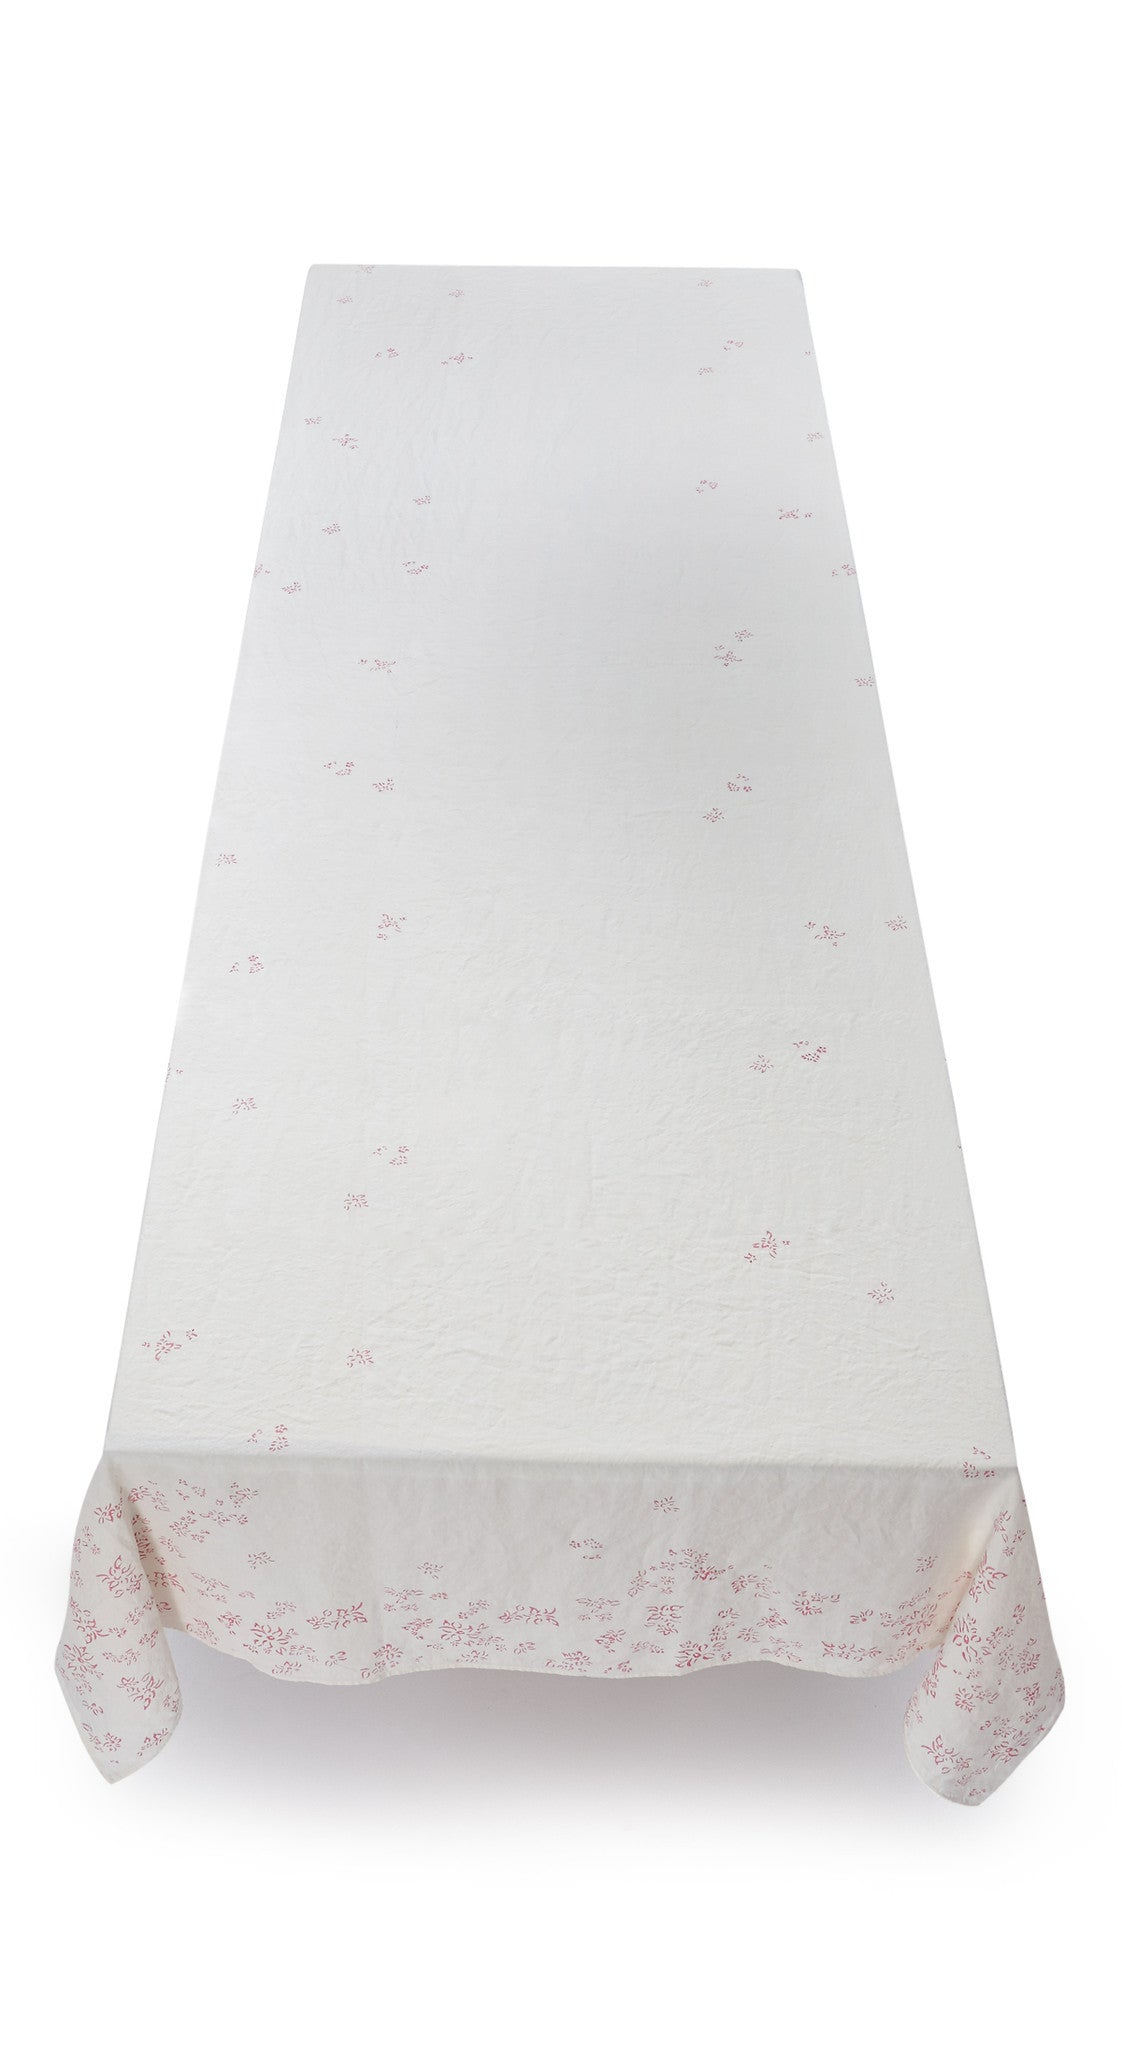 Bernadette's Falling Flower Linen Tablecloth in Rose Pink